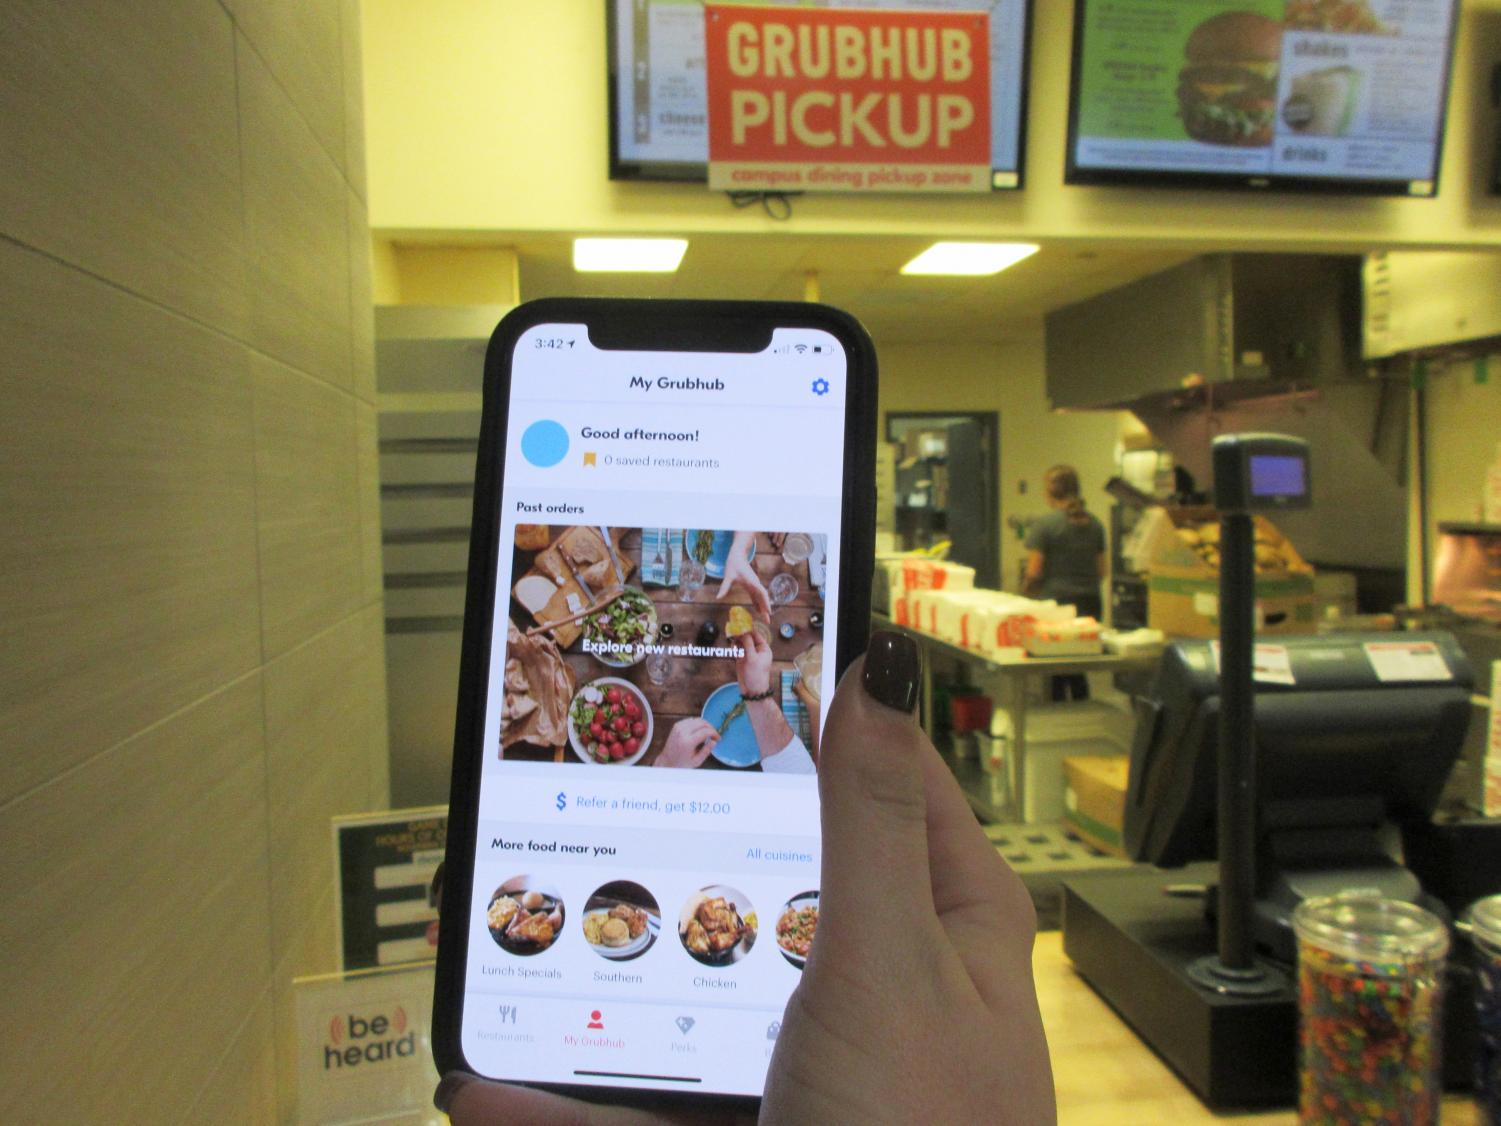 Tapingo was replaced by Grubhub as the two companies merged together, and students had to download the new app on their phones. Gerard Borne/The Lion's Roar